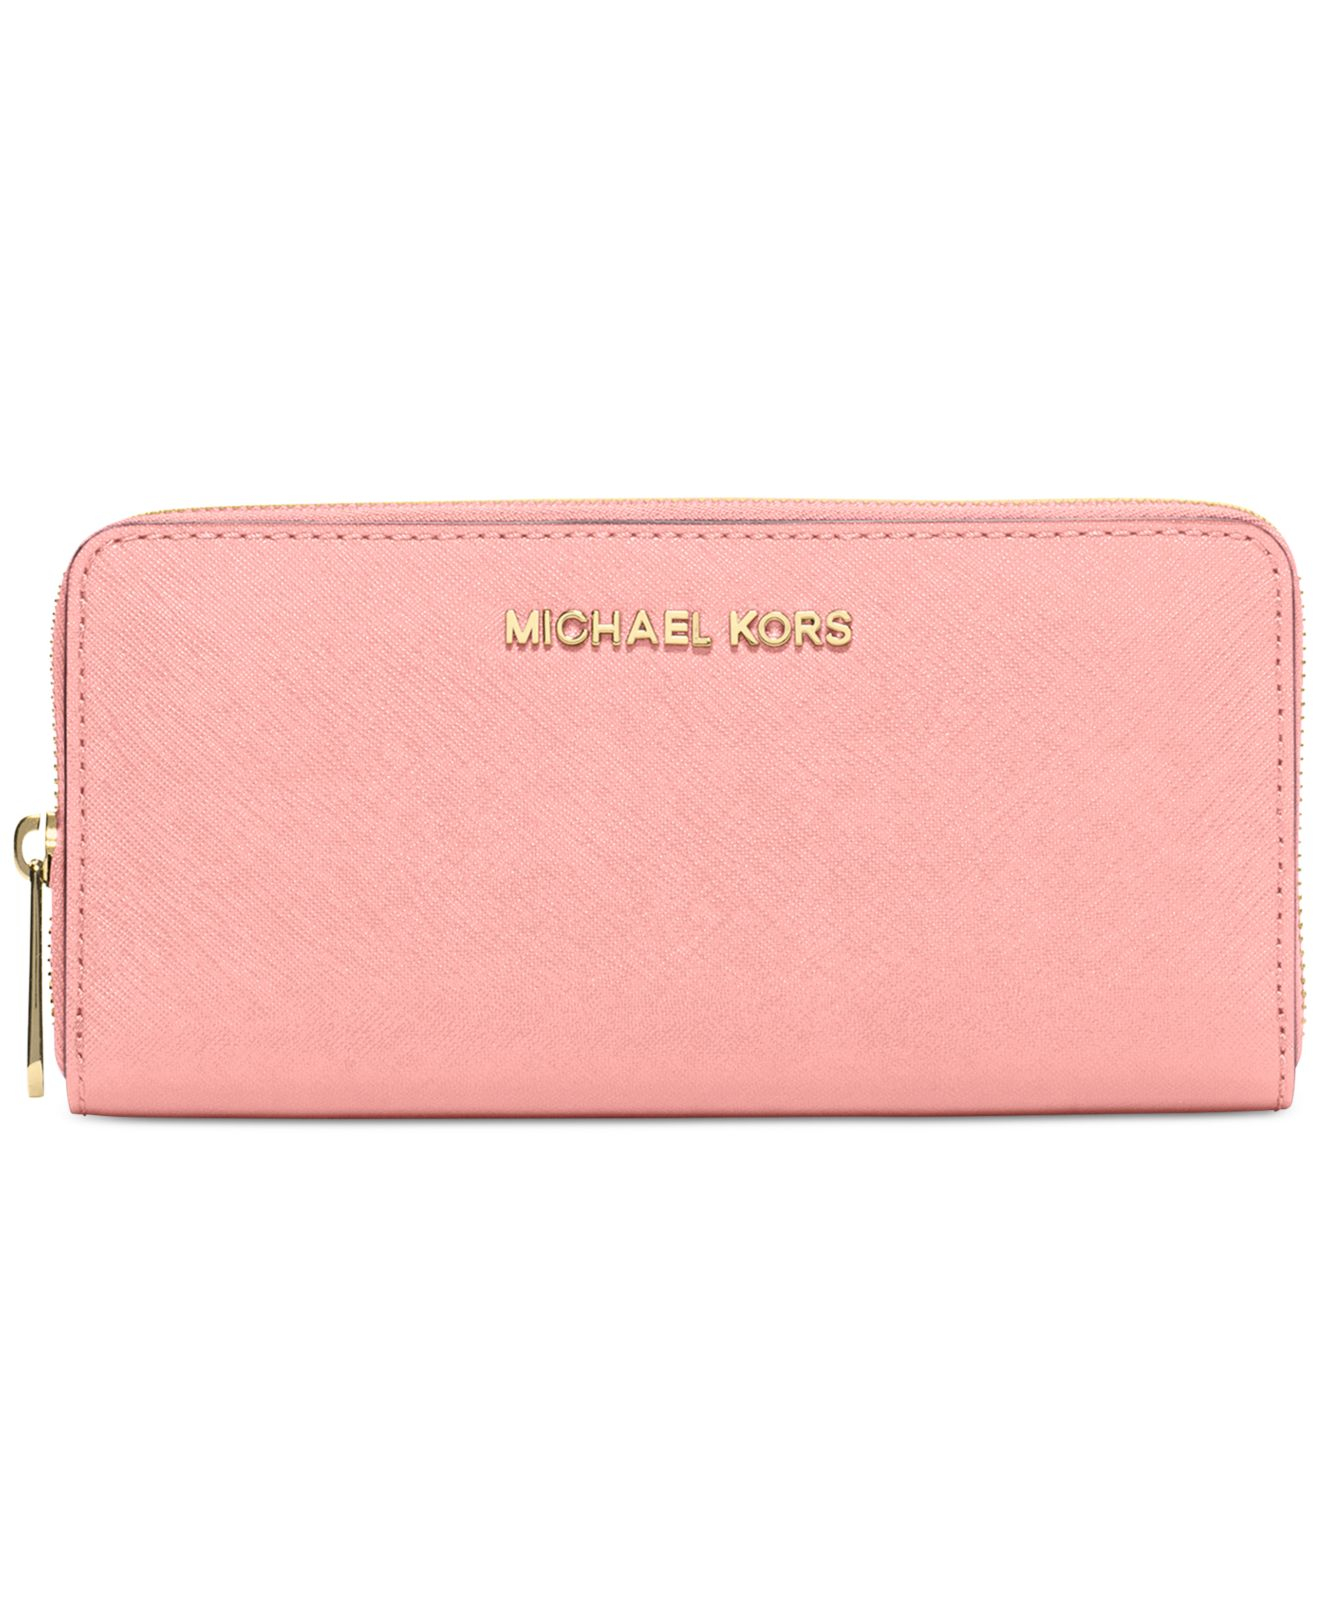 1118183ed451 Michael Kors Michael Travel Zip Around Continental Wallet in Pink - Lyst